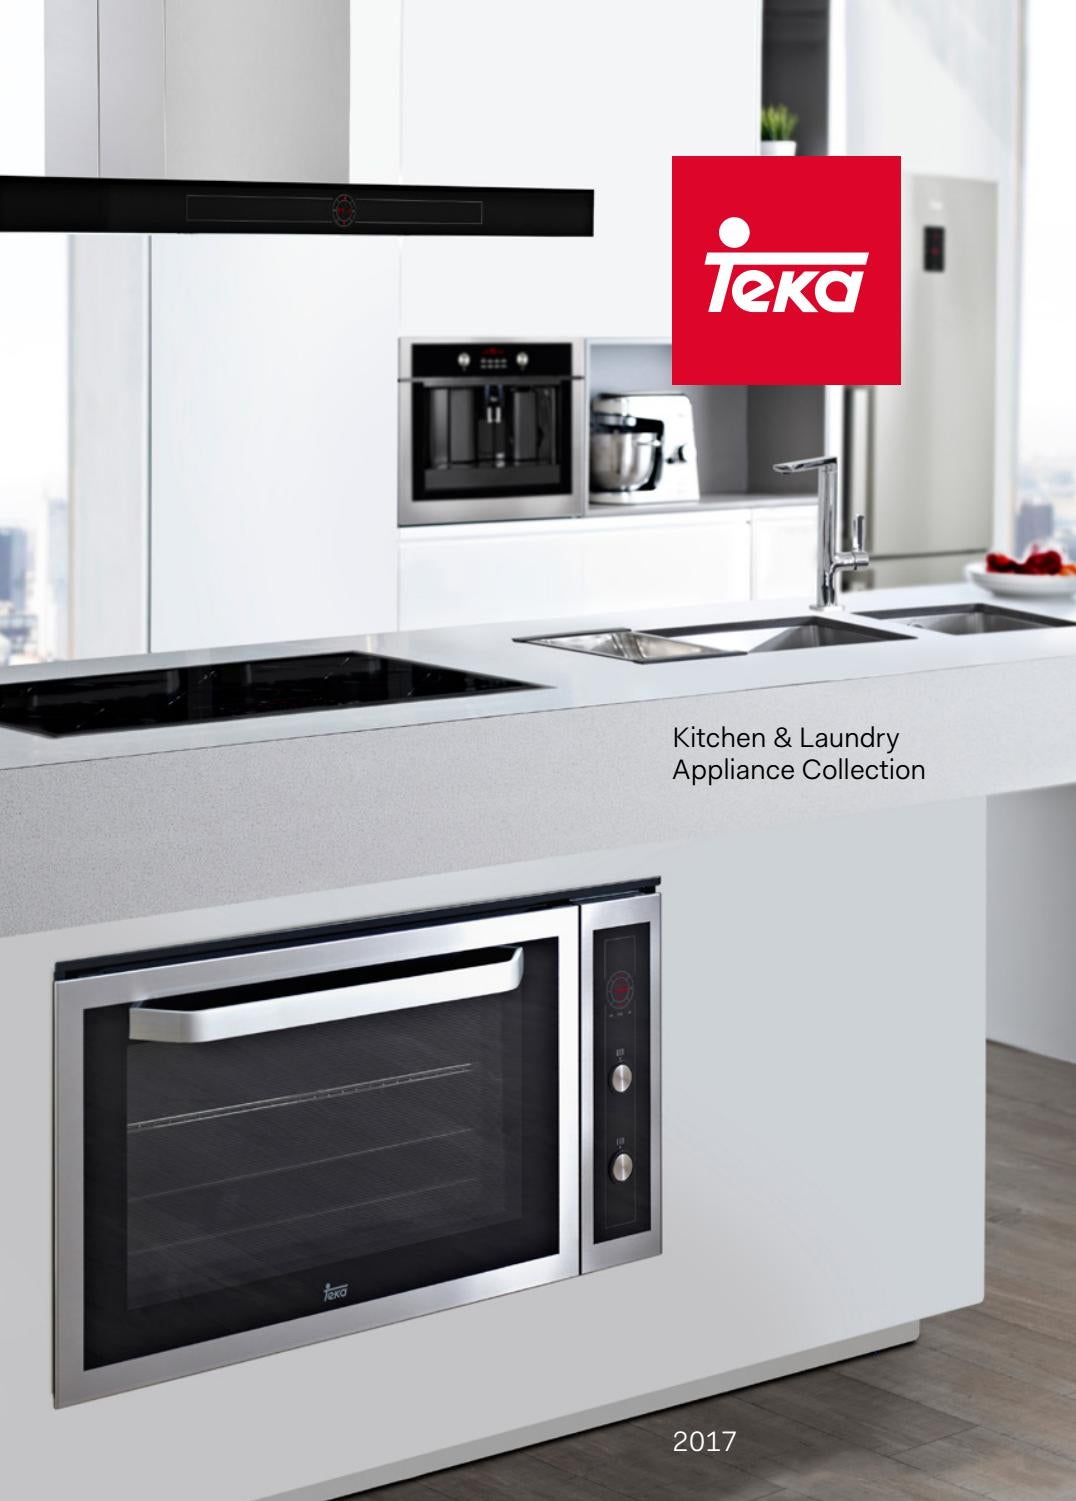 Teka Kitchen Amp Laundry Appliance Collection 2017 By